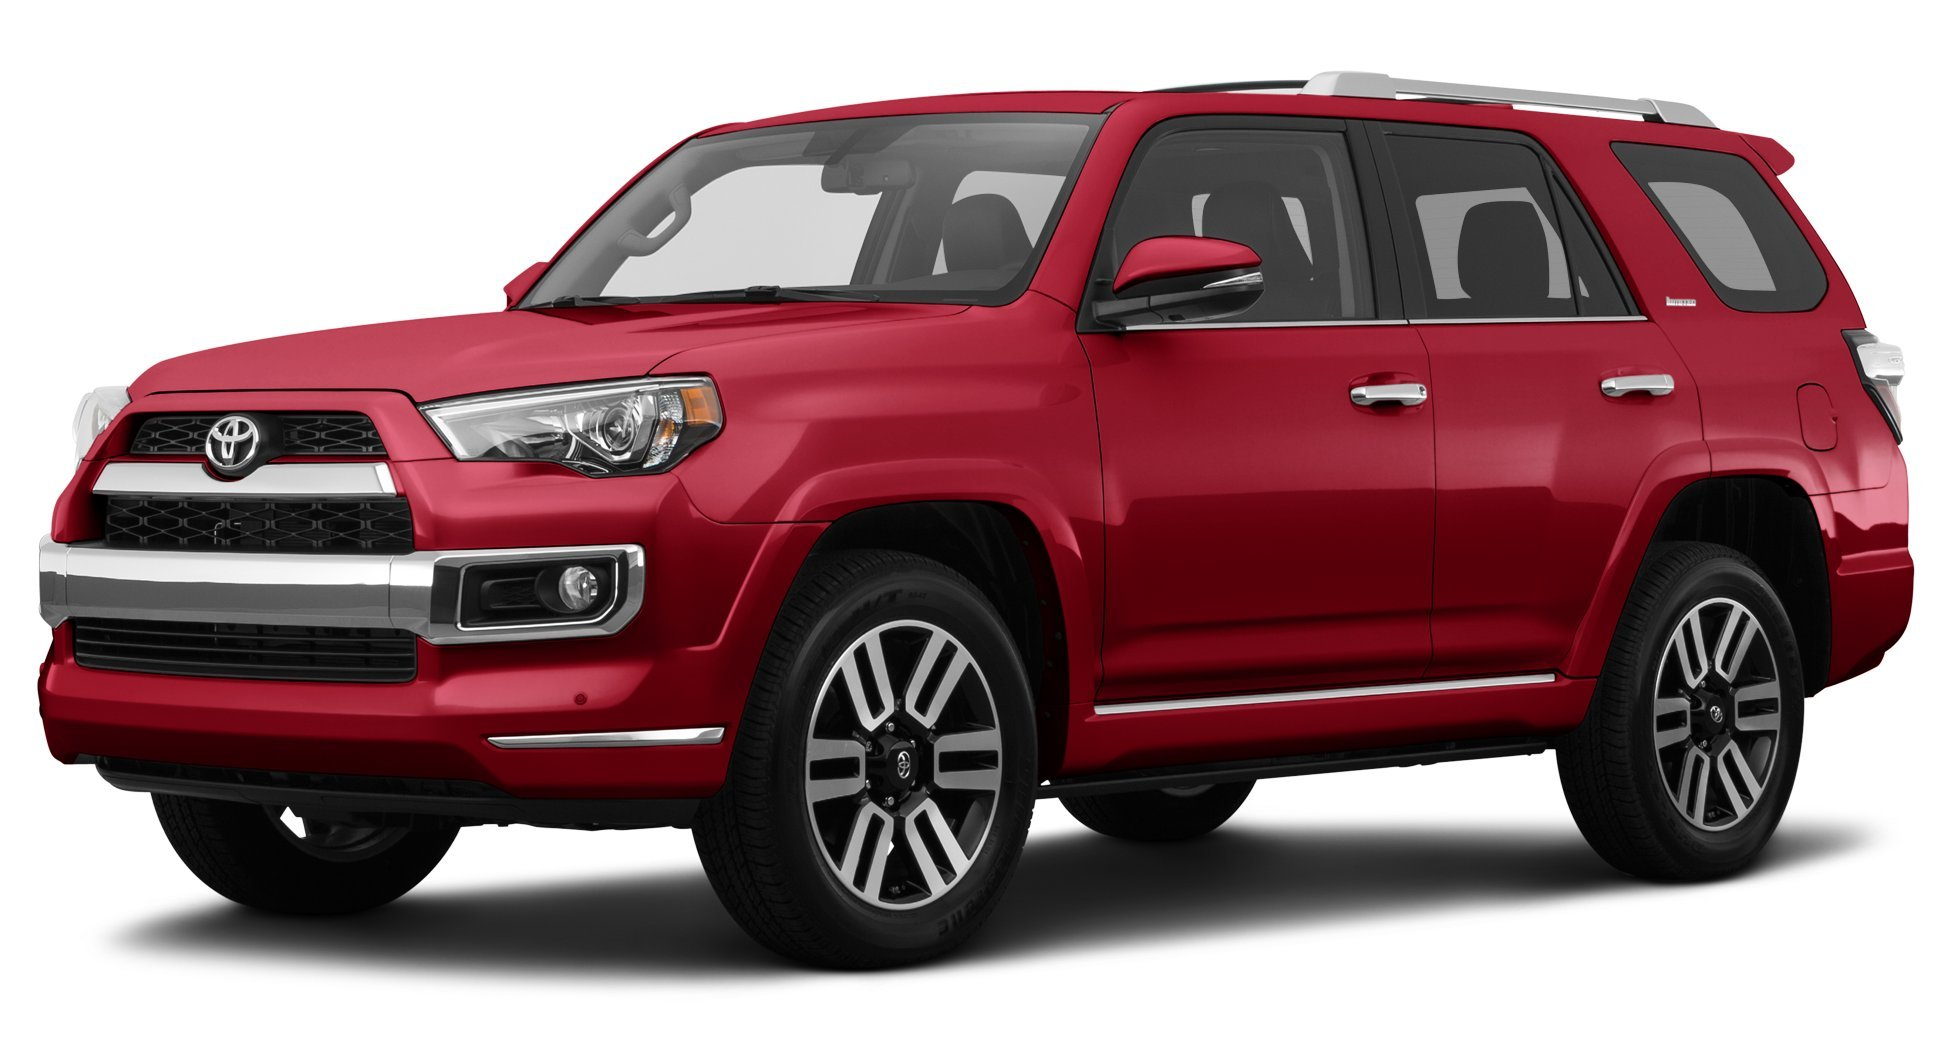 2016 toyota 4runner reviews images and specs vehicles. Black Bedroom Furniture Sets. Home Design Ideas